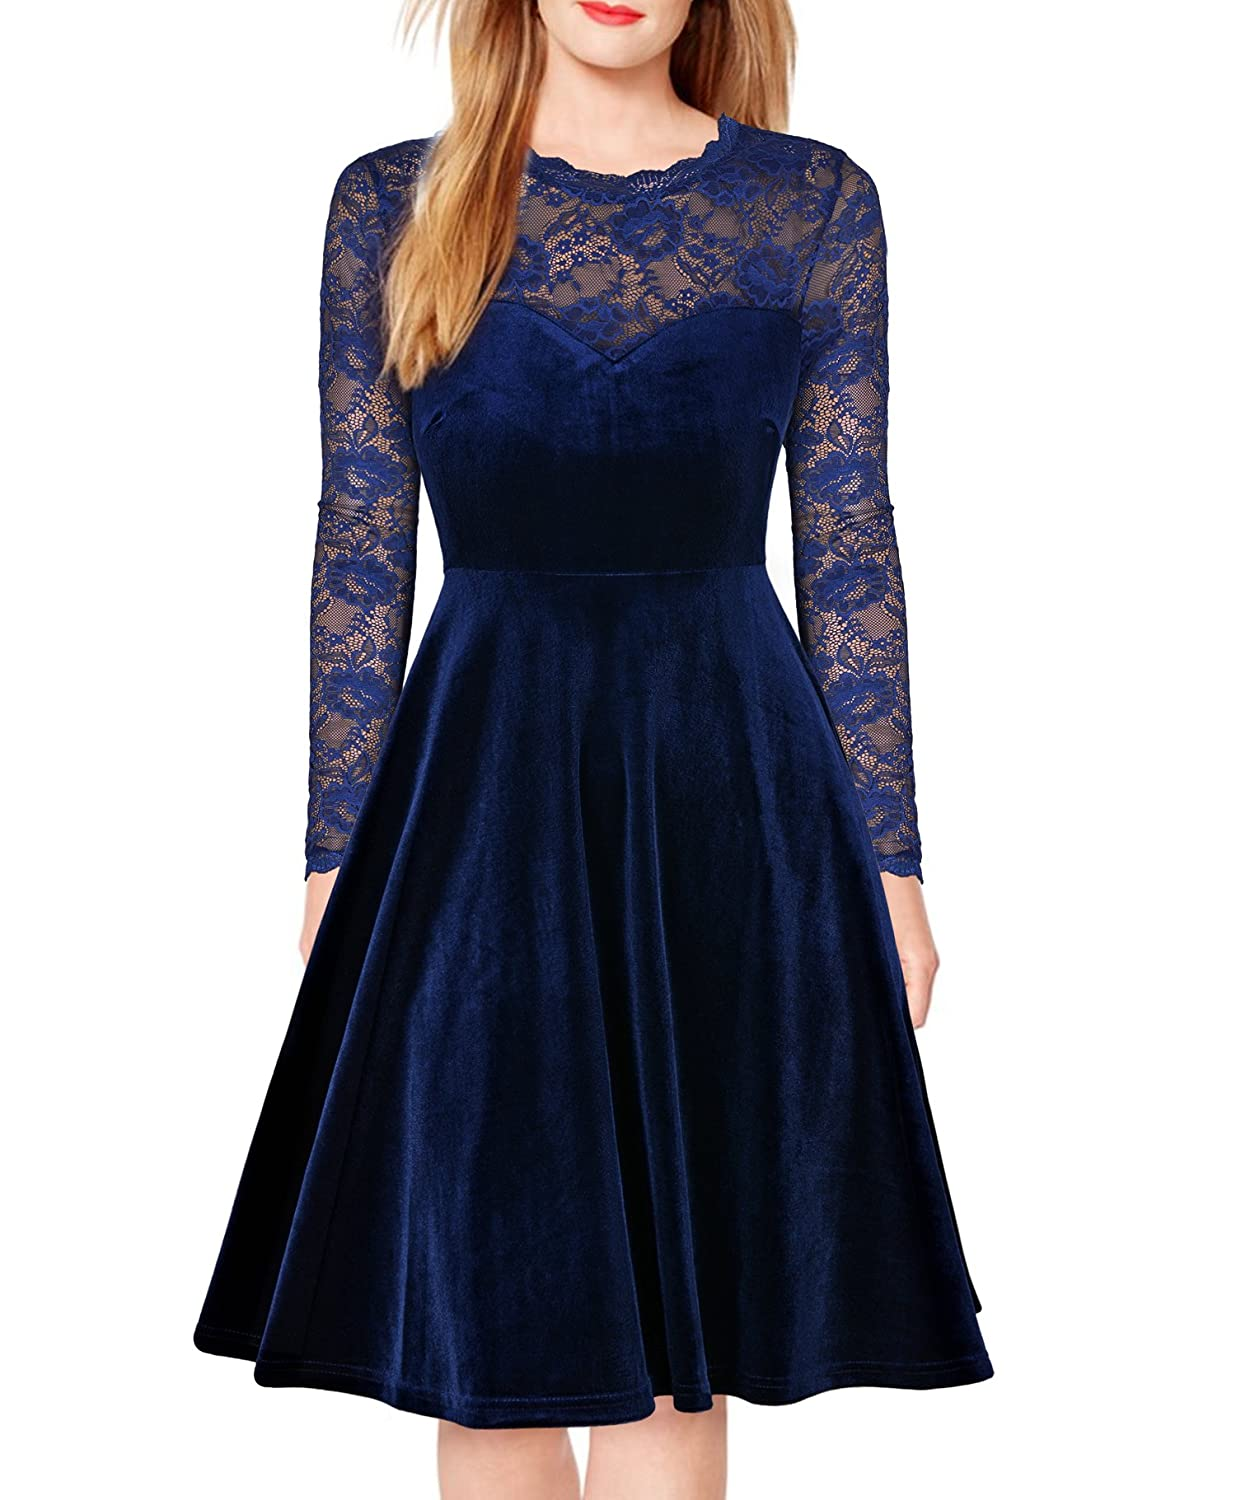 FORTRIC Women Vintage Floral Lace Long Sleeve Cocktail Party Formal Swing Dress FORT105